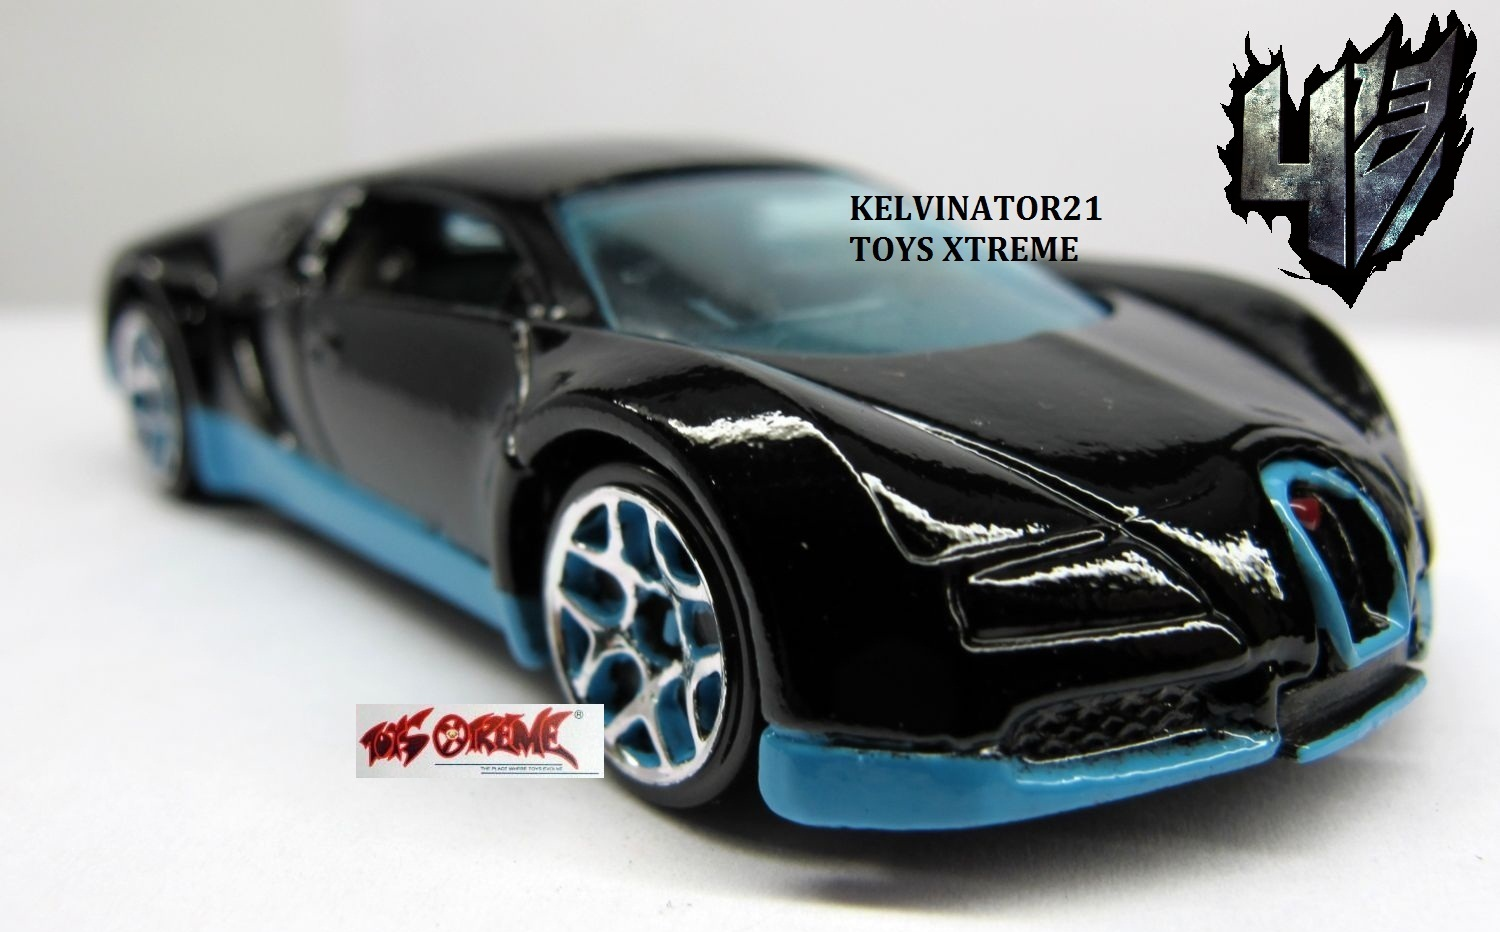 kelvinator21 39 s hot wheels. Black Bedroom Furniture Sets. Home Design Ideas